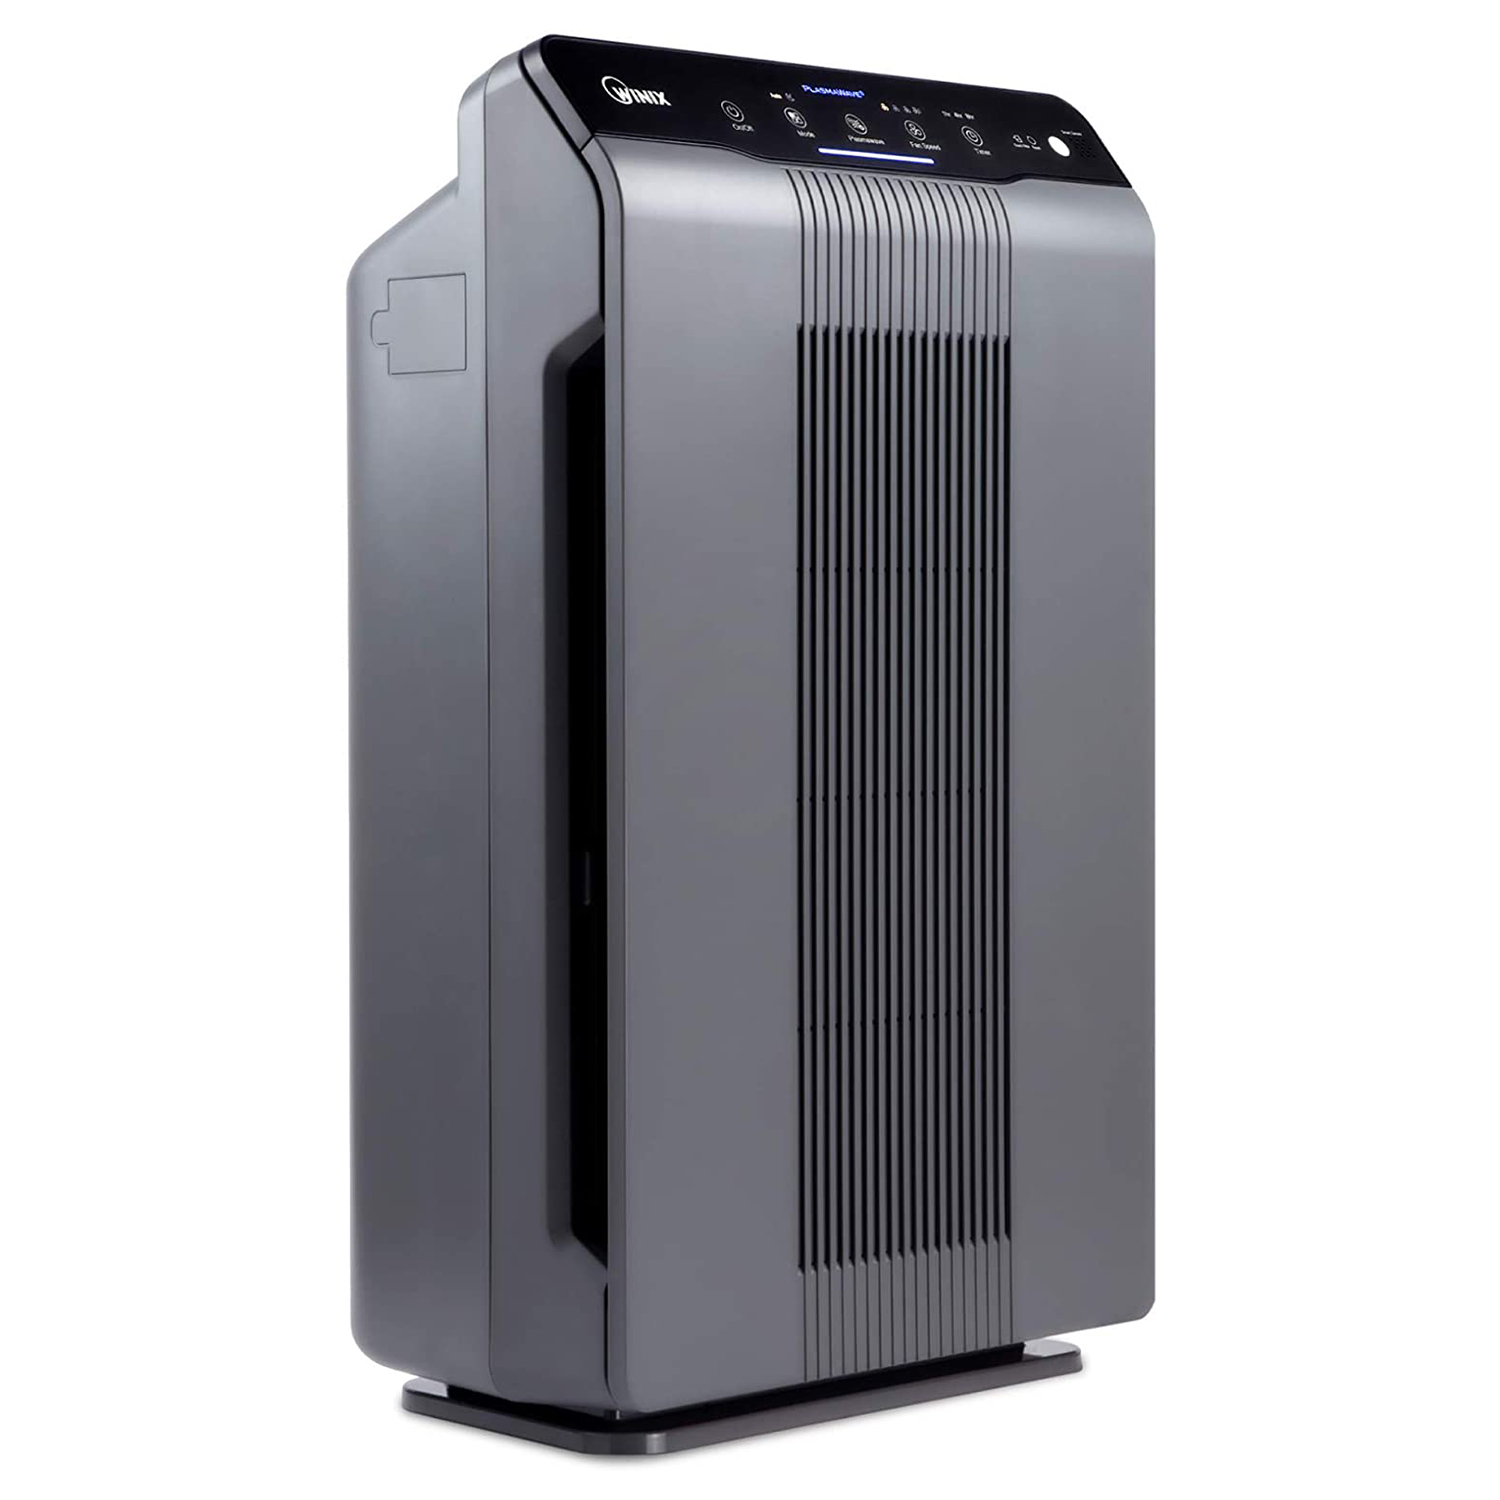 Winix 5300-2 Air Purifier with HEPA Filter